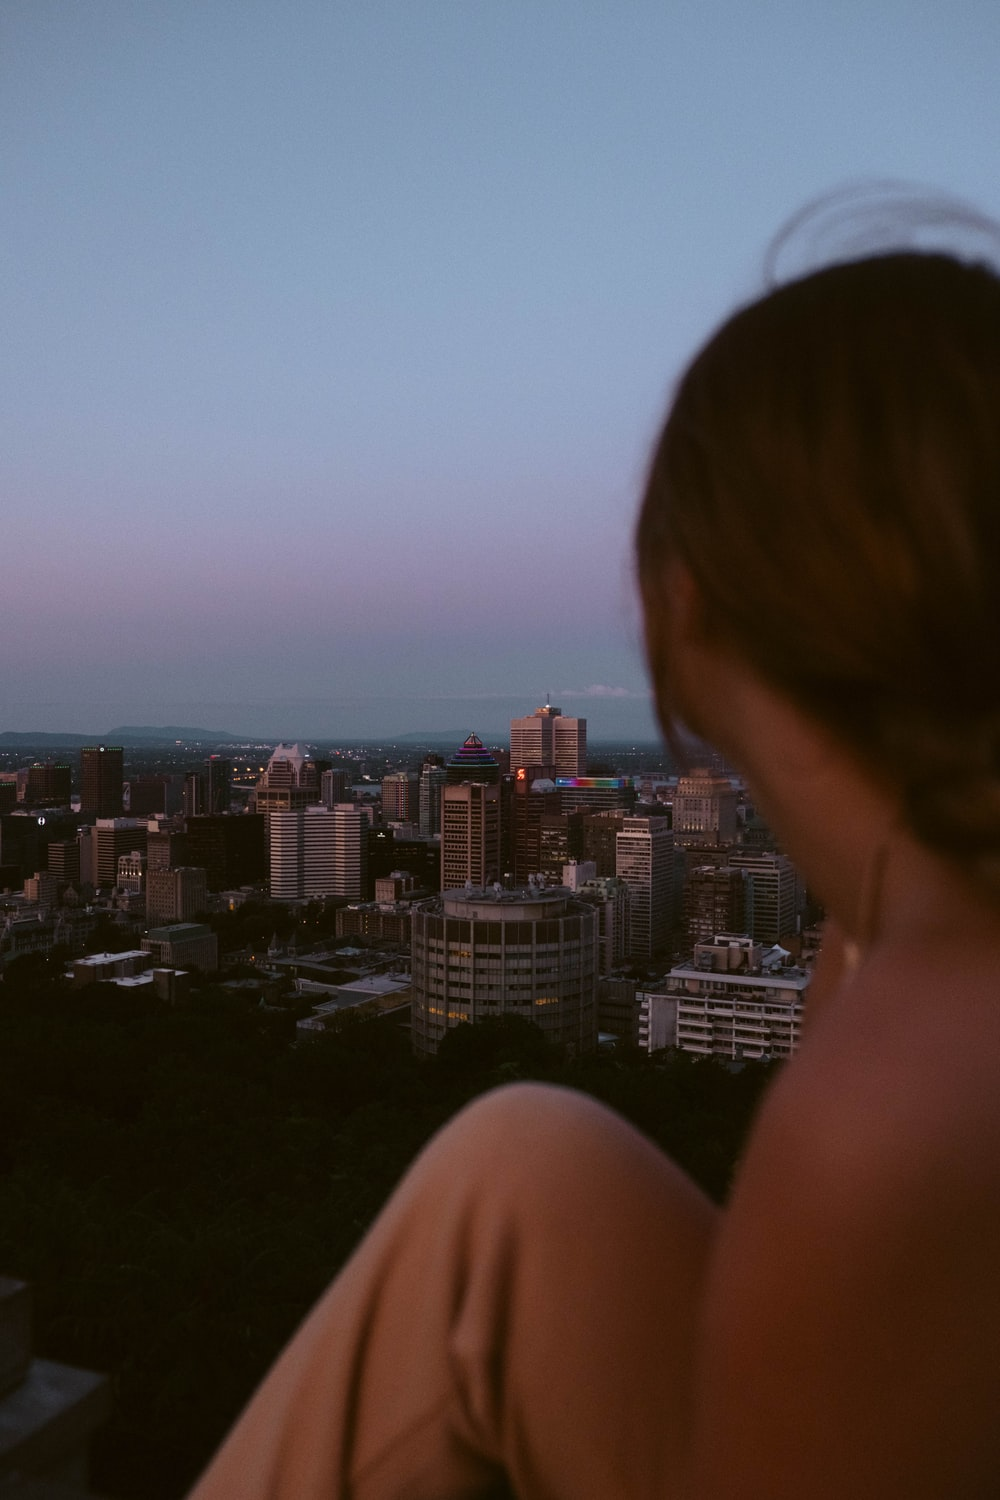 woman looking at the city during daytime